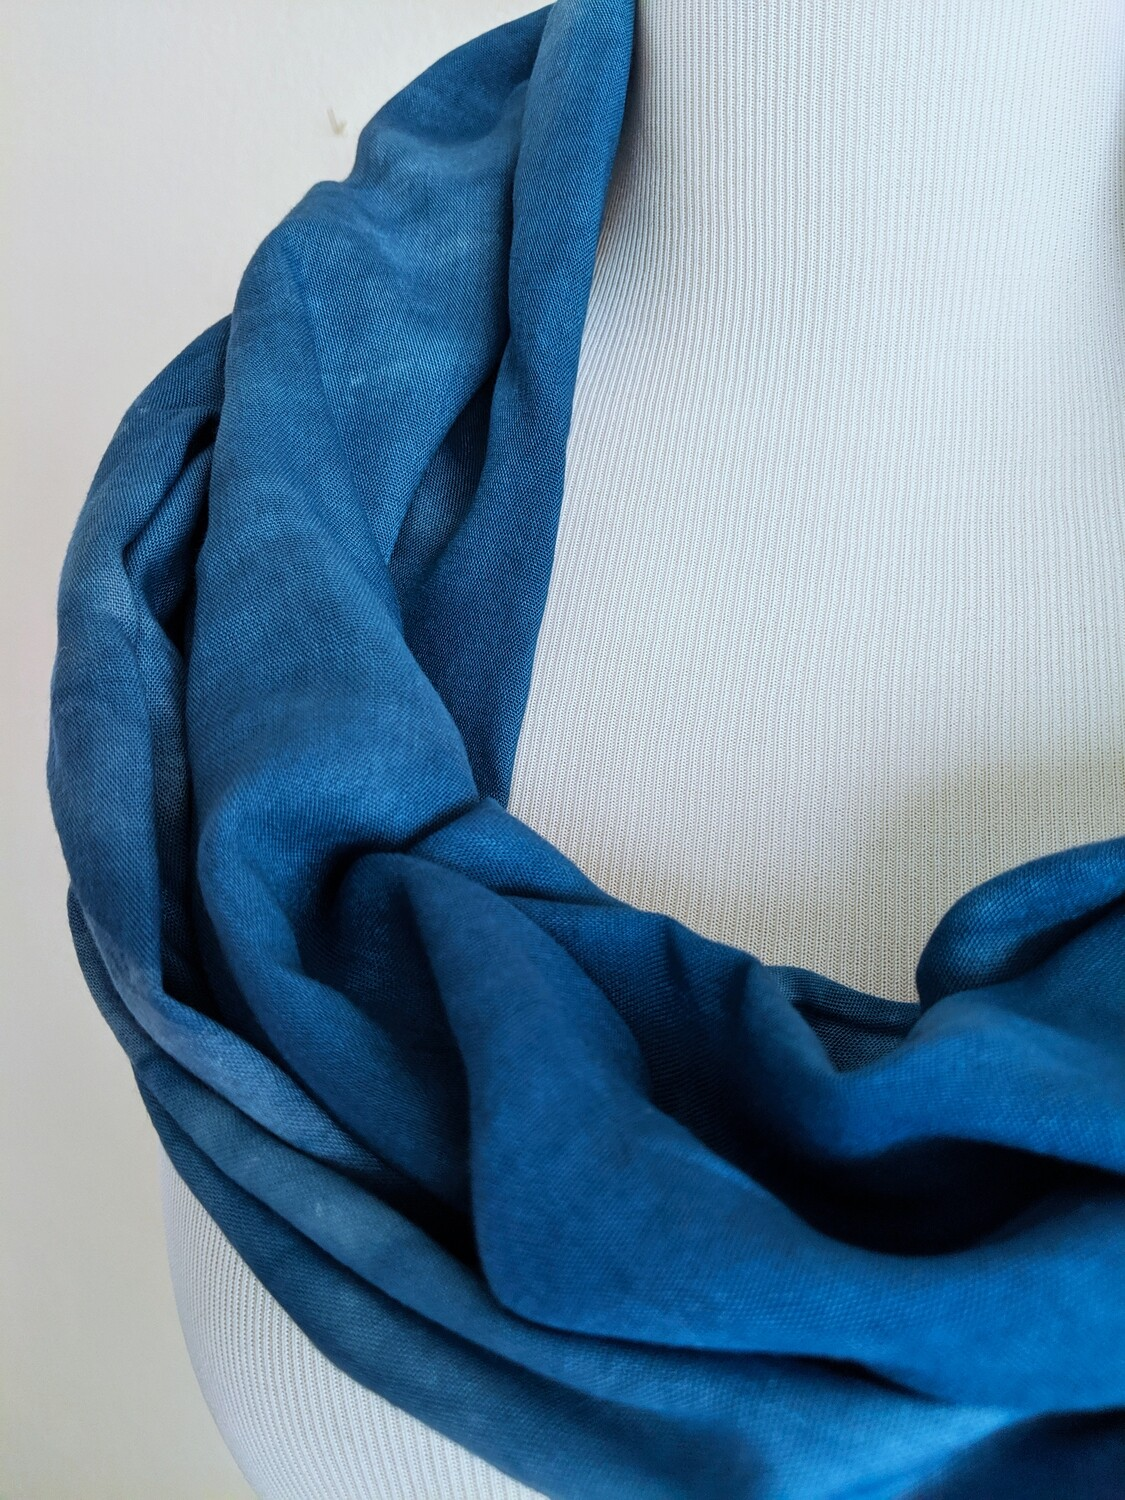 INFINITY SCARF - NATURAL DYE - INDIGO DENIM